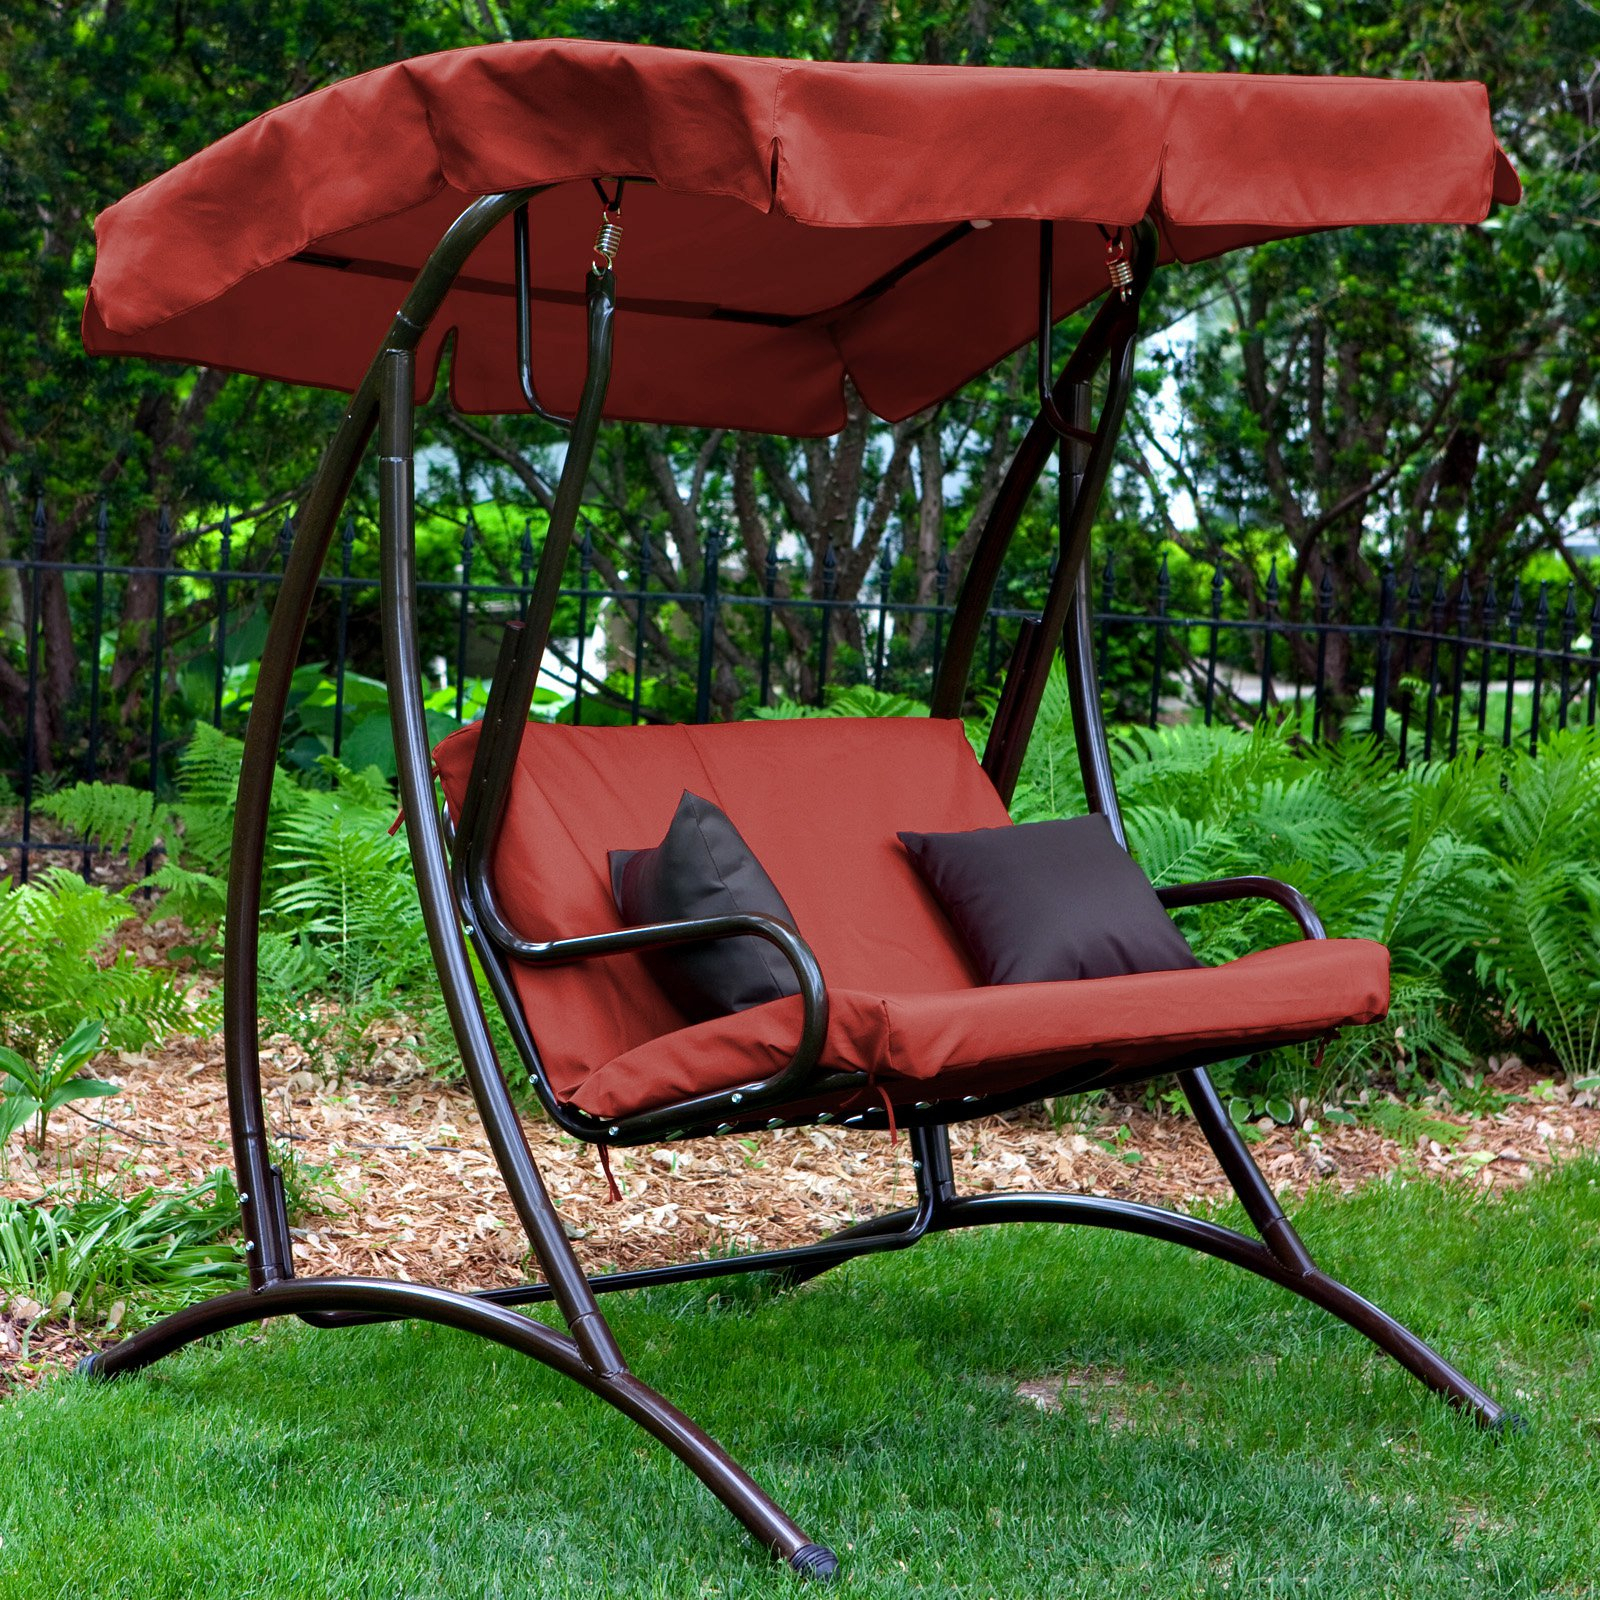 How To Replace A Canopy On An Outdoor Swing (View 8 of 25)